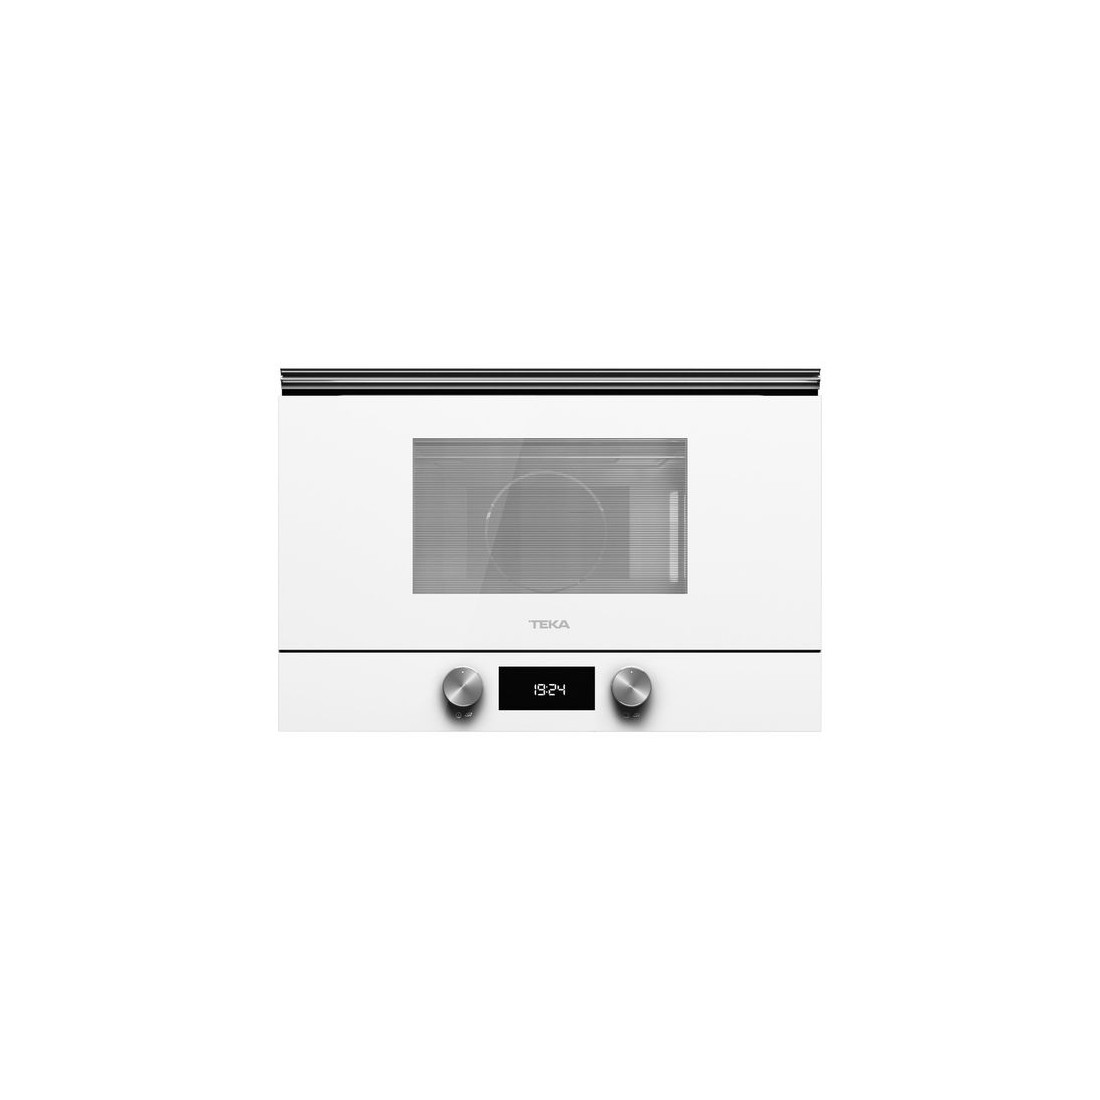 Microondas Integrable - Teka ML8220BISL Cristal, Blanco